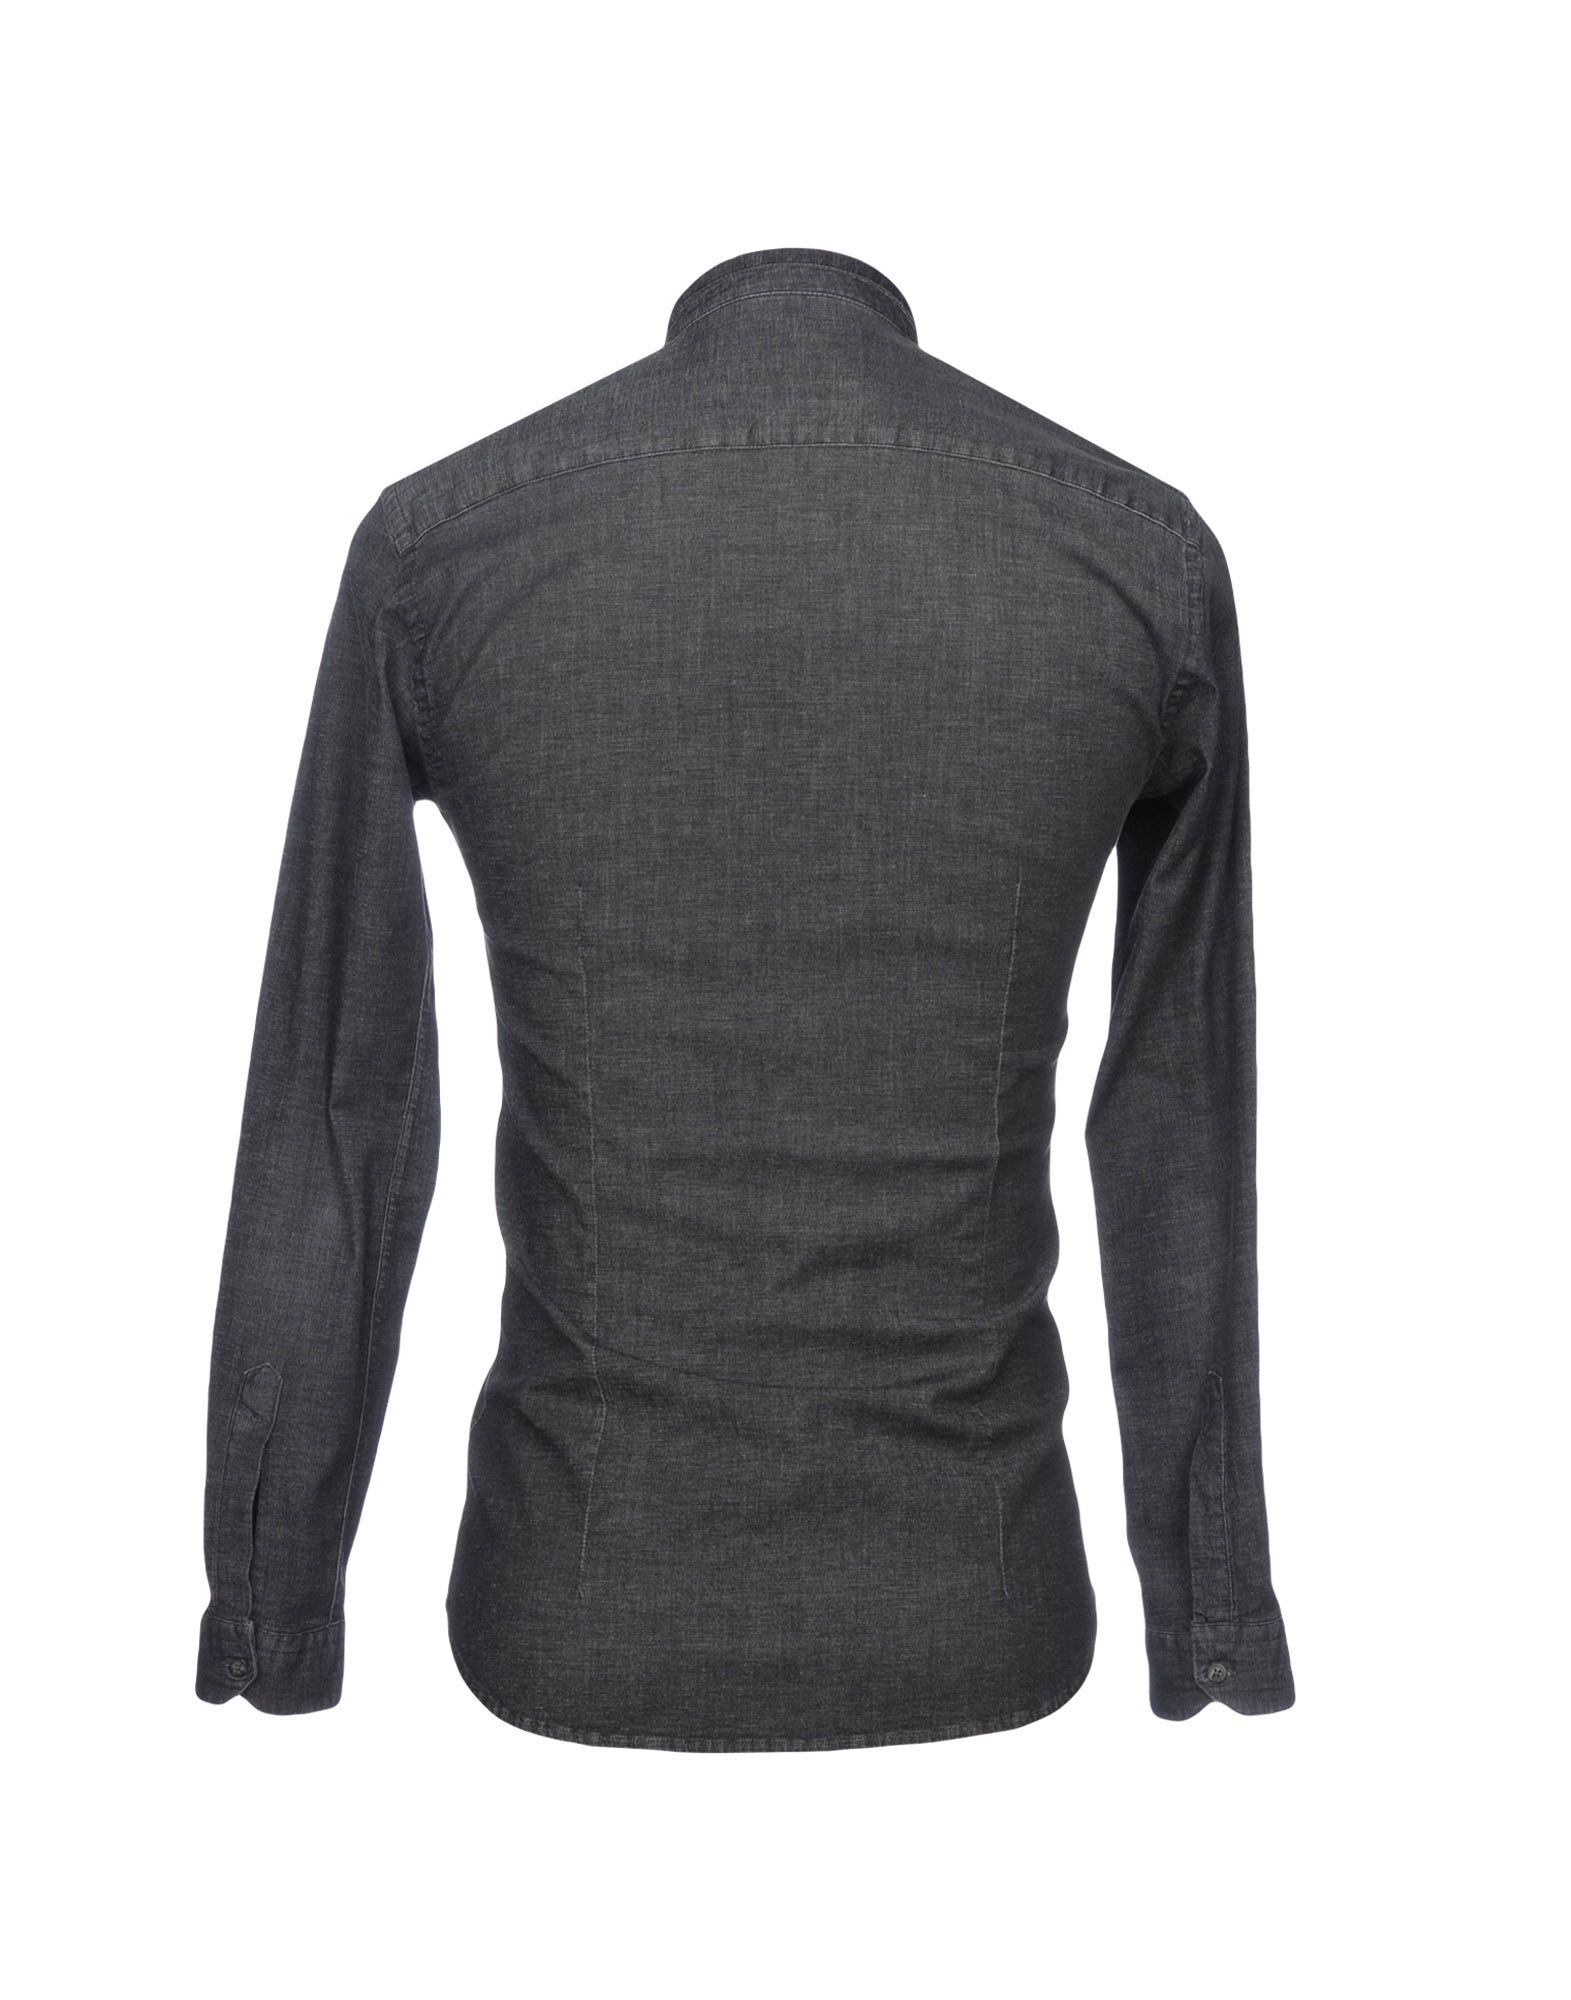 Camicia Jeans Uomo ..,Beaucoup Uomo Jeans - 42672640KR 8ccb01